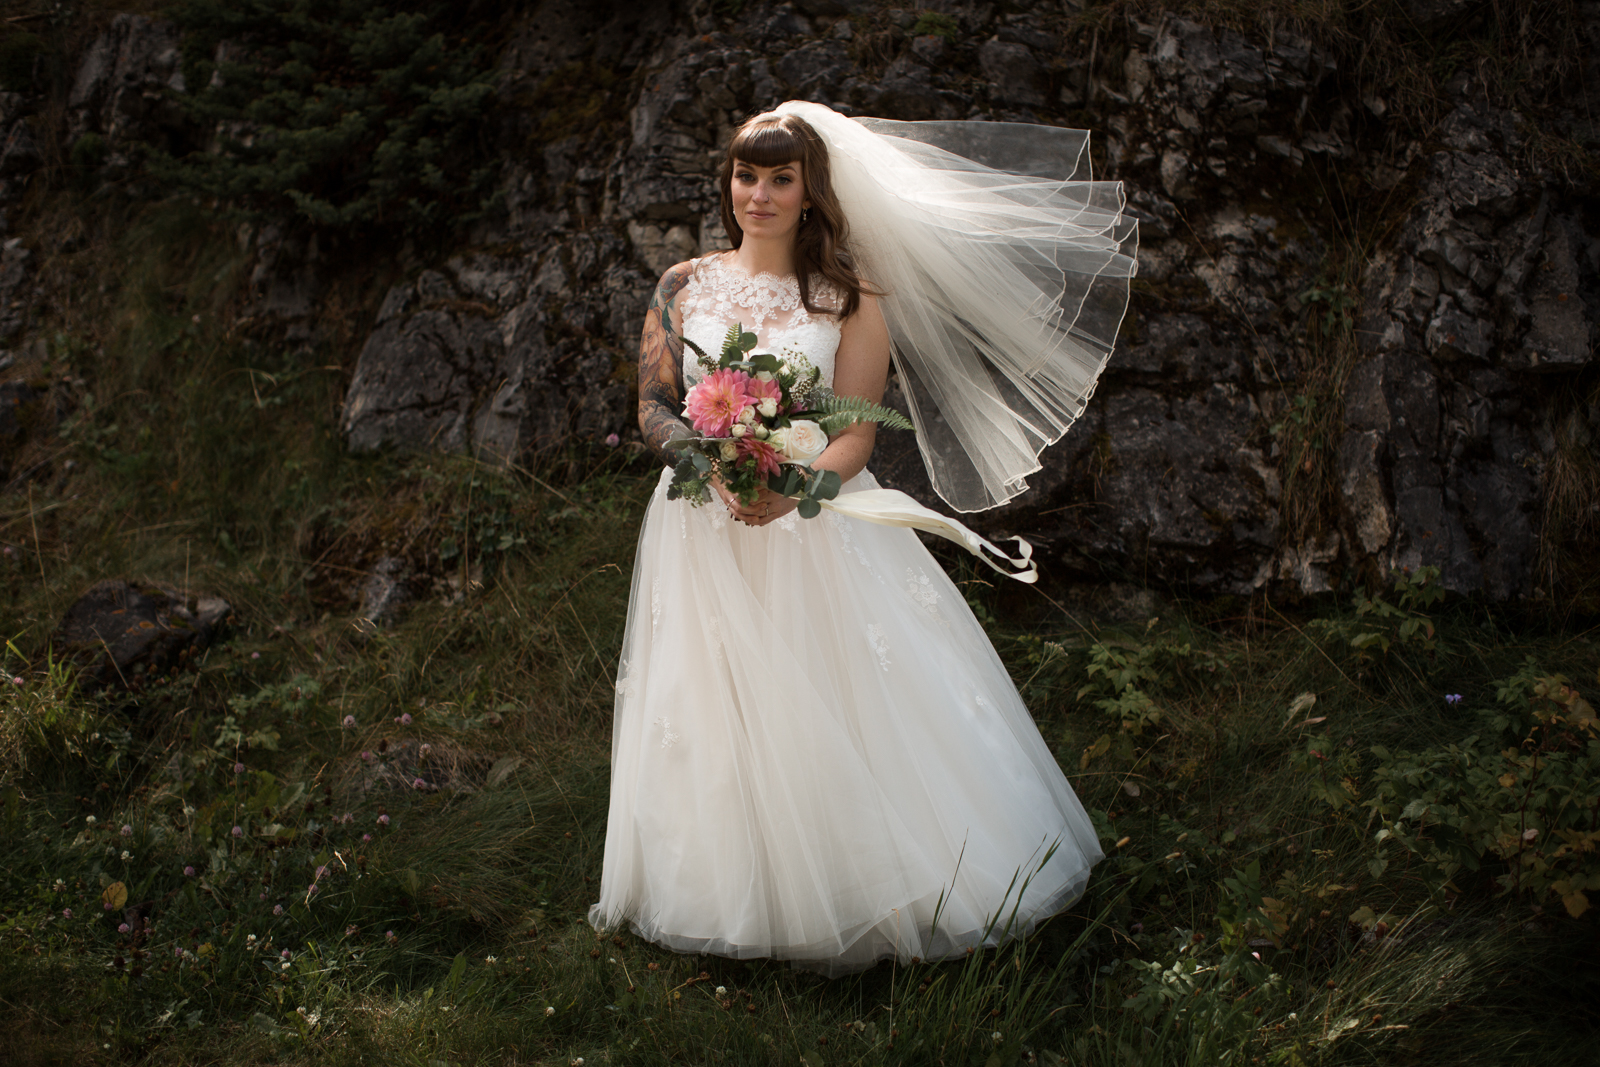 37-willow_and_wolf_photography_stephanie_and_kyle_banff_wedding_blogbec_8108